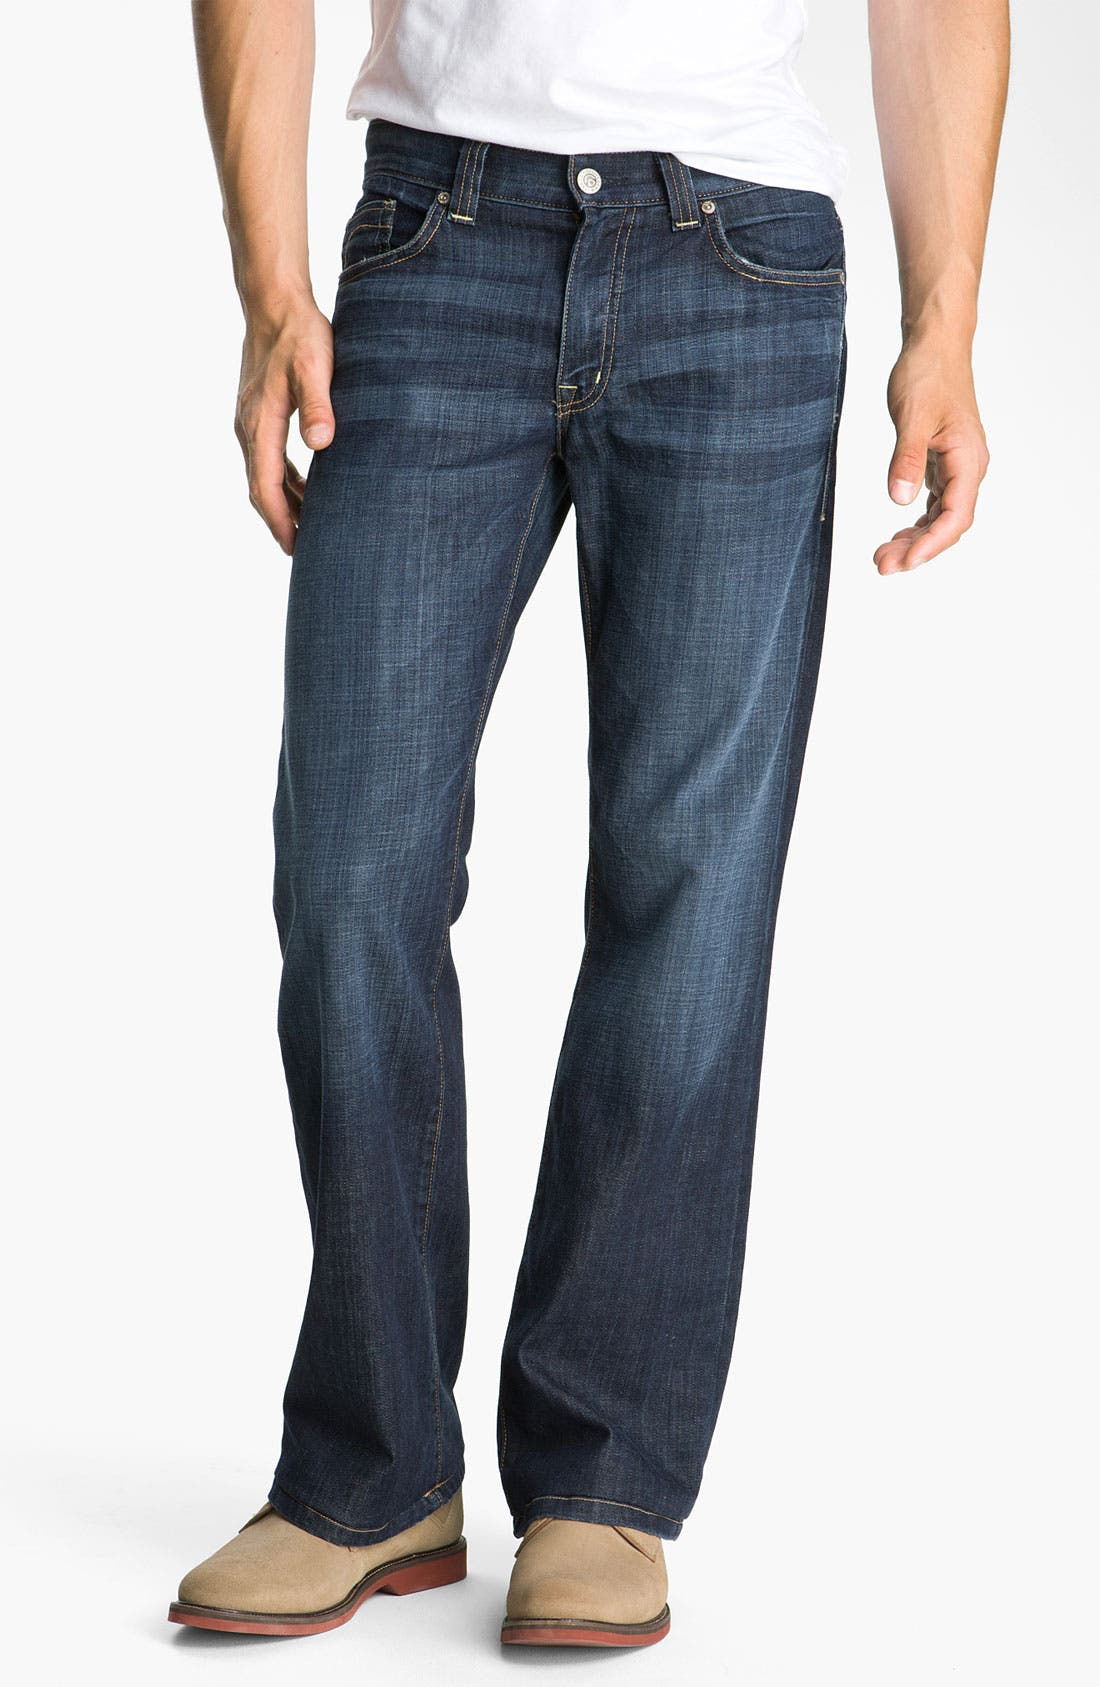 Alternate Image 1 Selected - Fidelity Denim 'Camino' Relaxed Leg Jeans (Generation Blue)